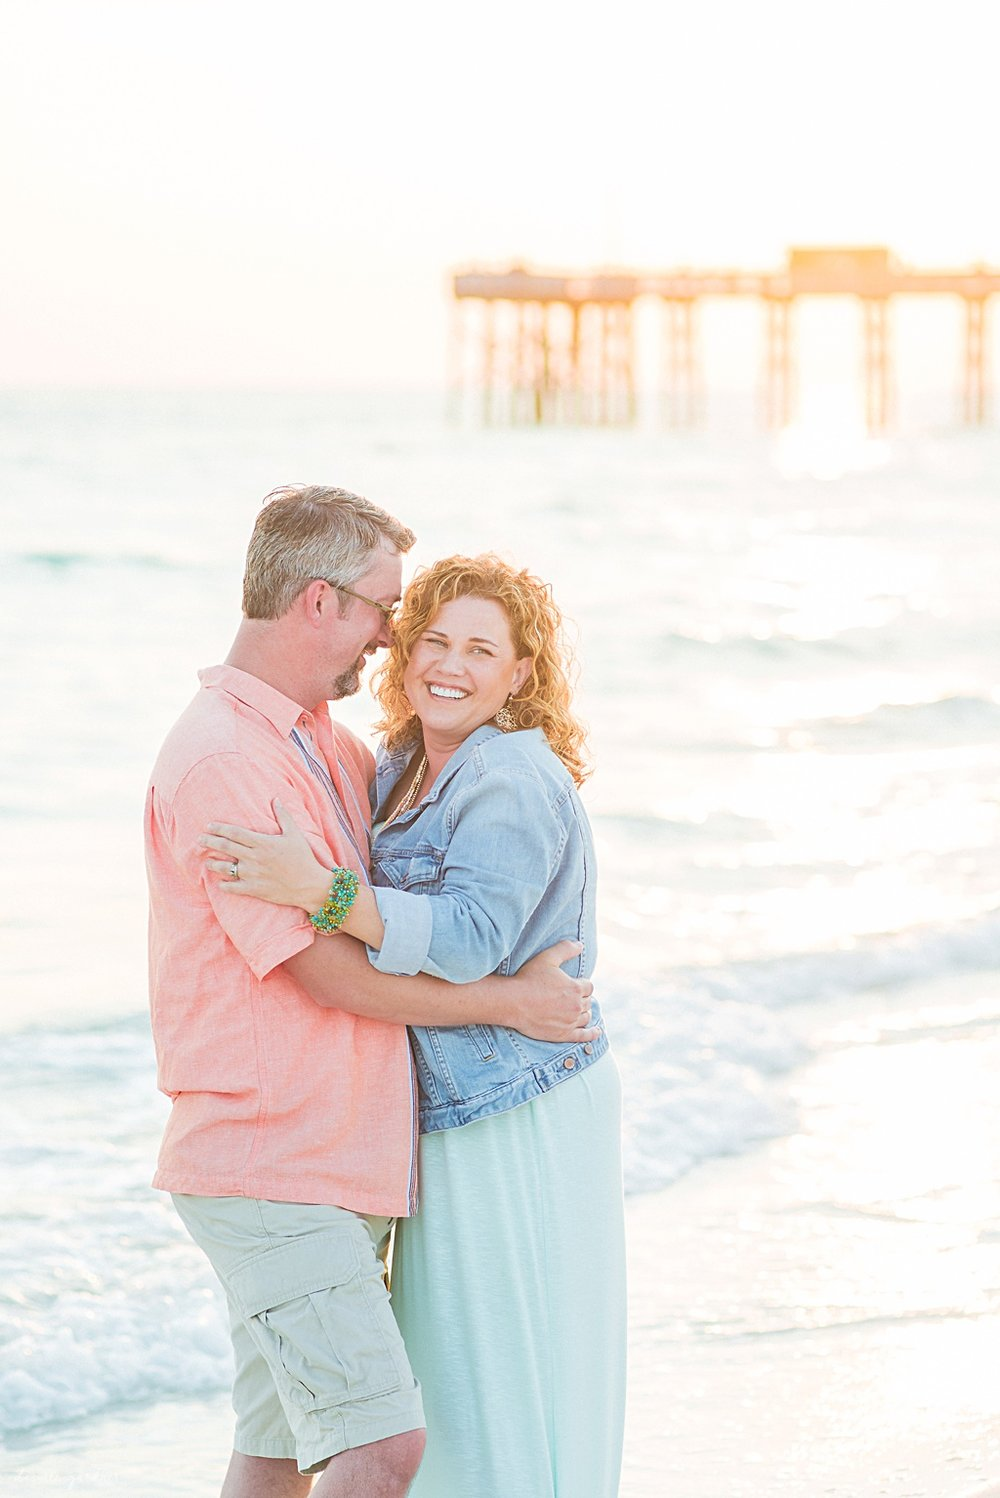 panama-city-beach-30a-wedding-photographer-family-destination_0605